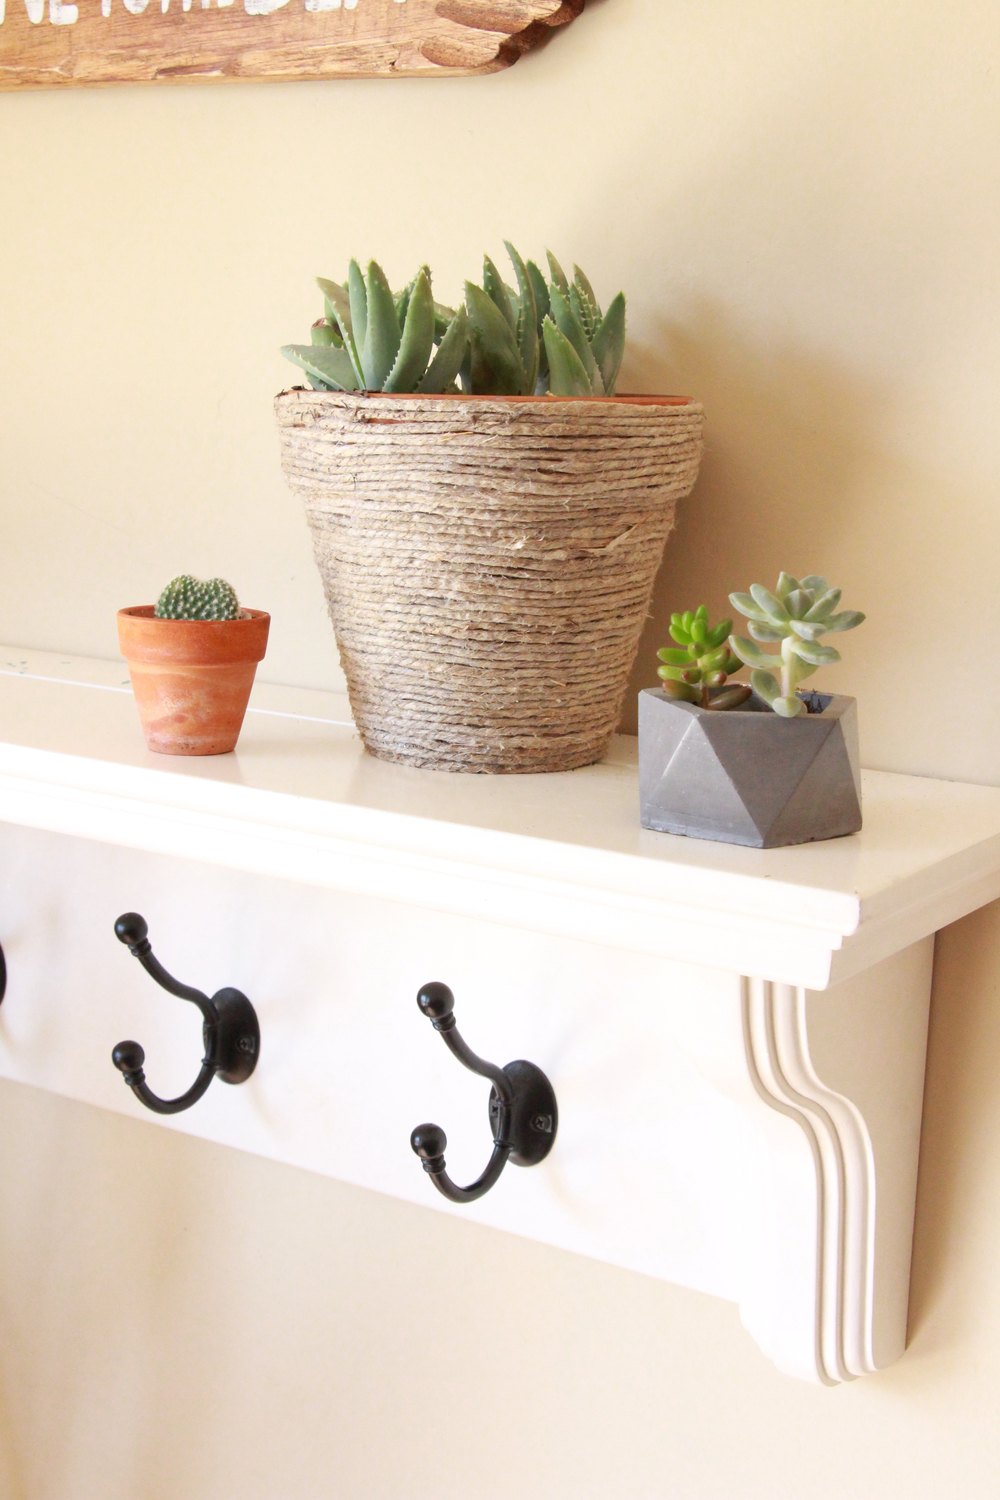 concrete-geometric-succulent-pot-seaside-succulents-a-garden-tour-needlesandleaves_net.jpg